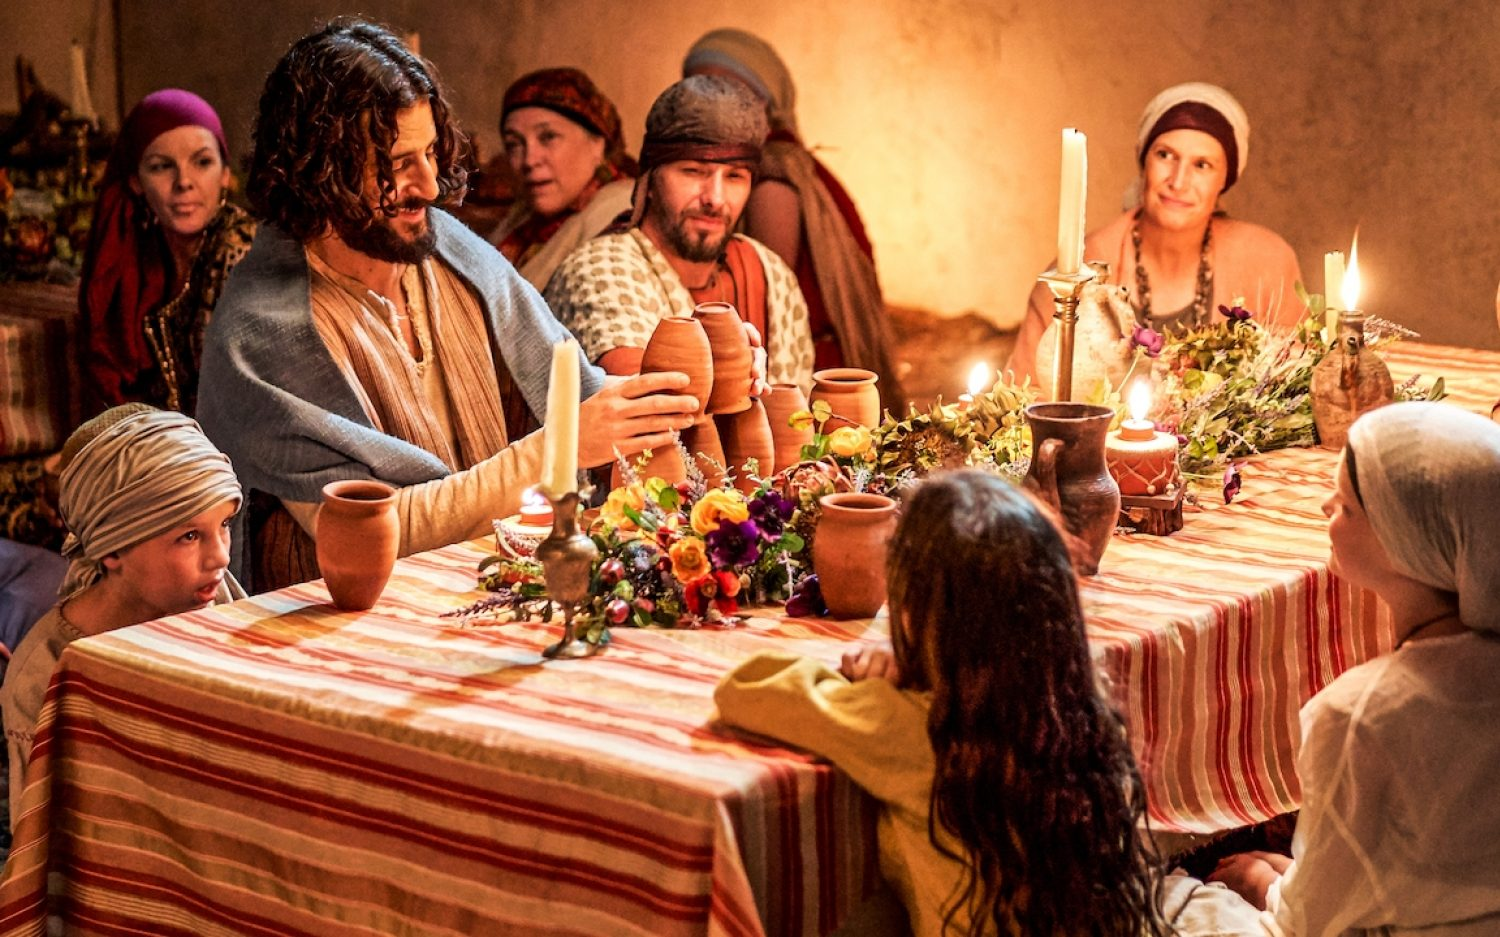 An adaptation of the Gospels worth watching